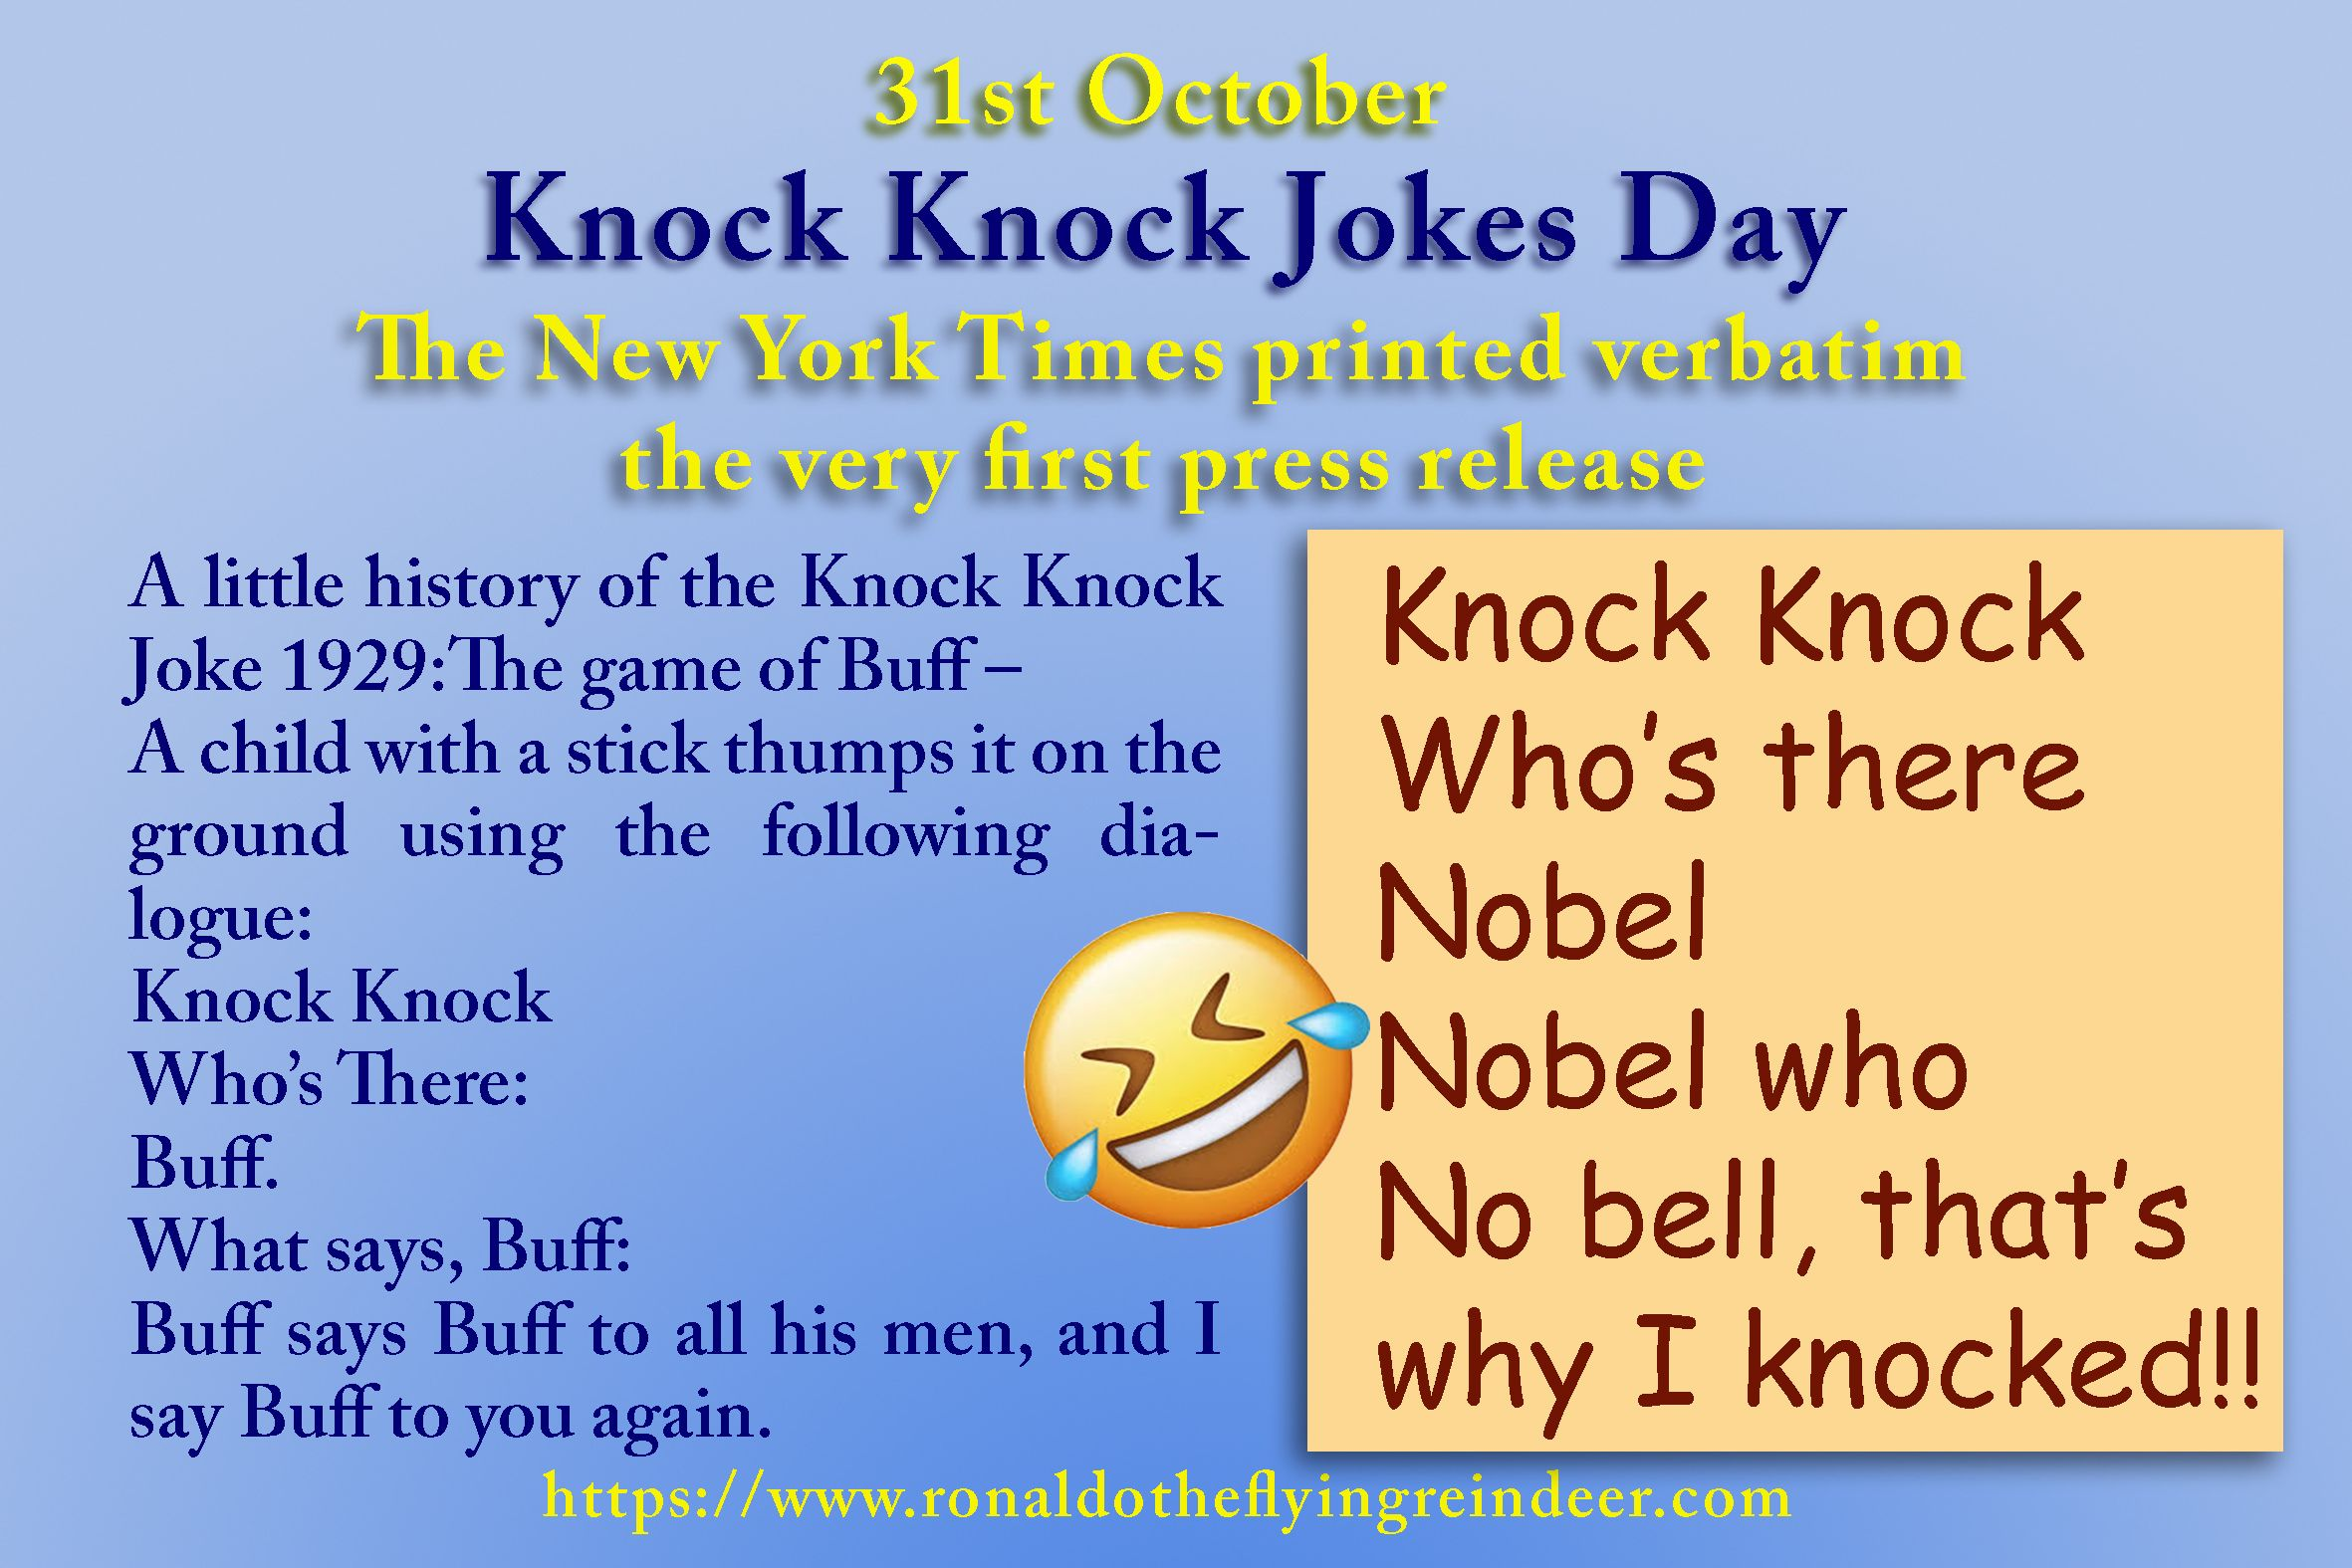 Today 31st Oct Is Knockknockjokeday Knock Knock Jokes Can Take The Form Of Simple Puns On The Name Given Jokes Specifica Knock Knock Jokes Jokes Knock Knock